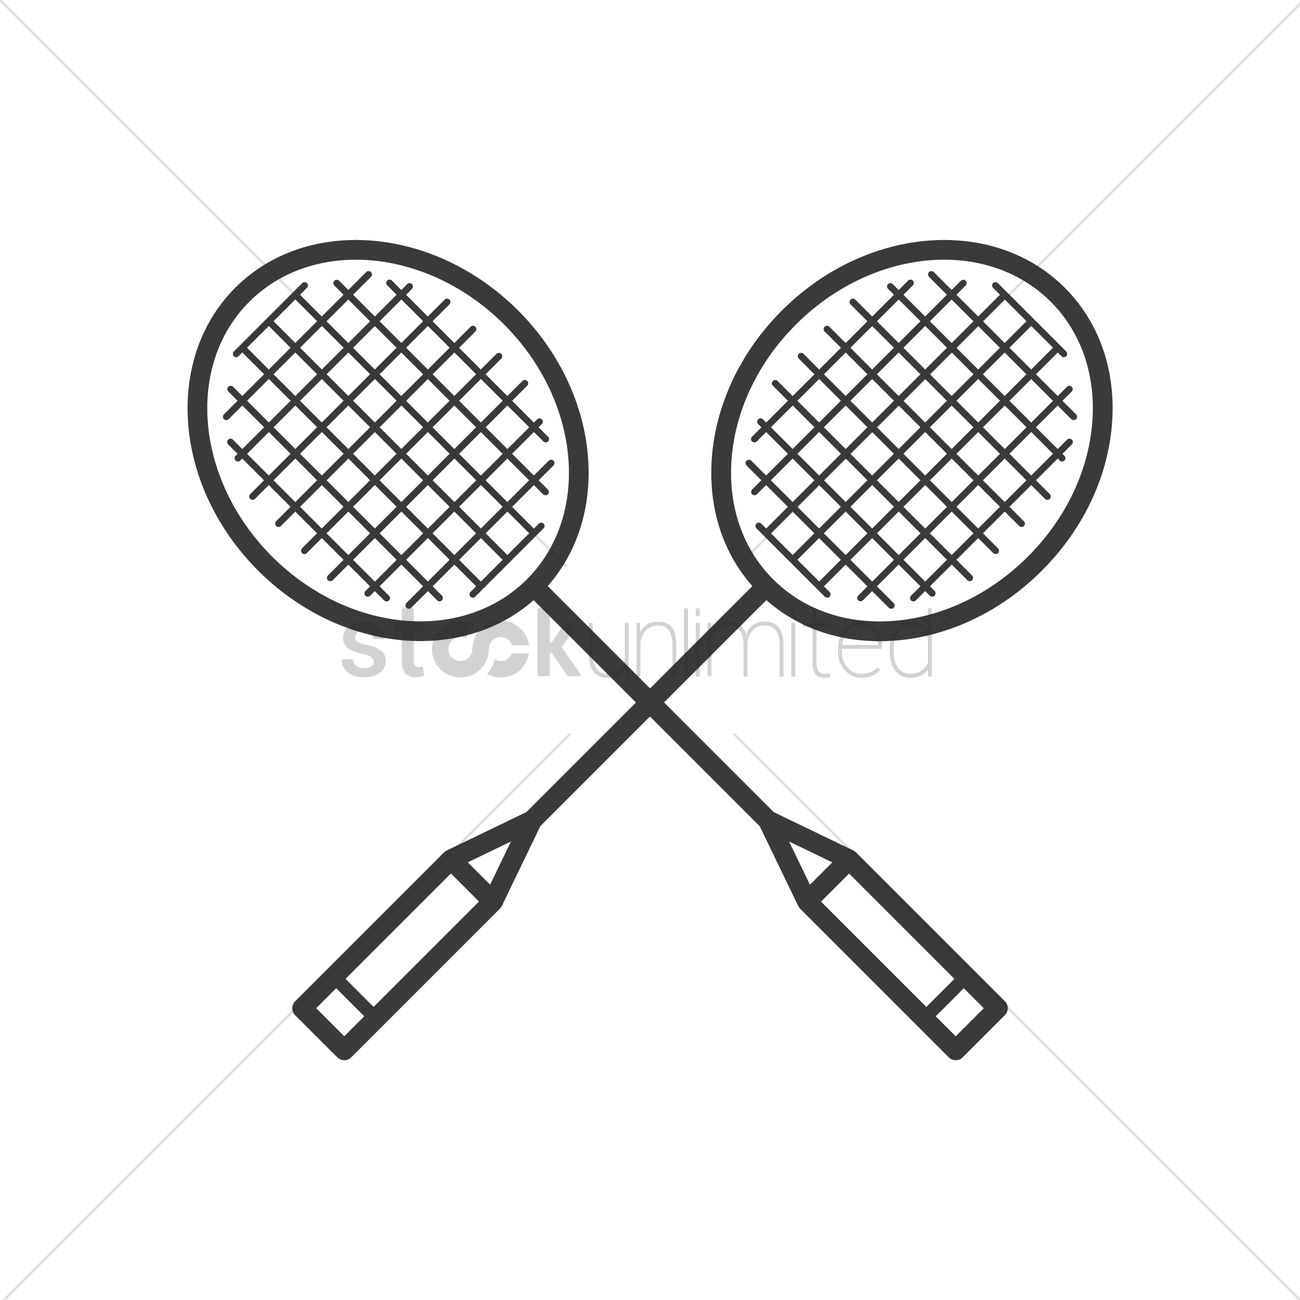 Rackets vector image stockunlimited. Racket clipart badminton net black and white download